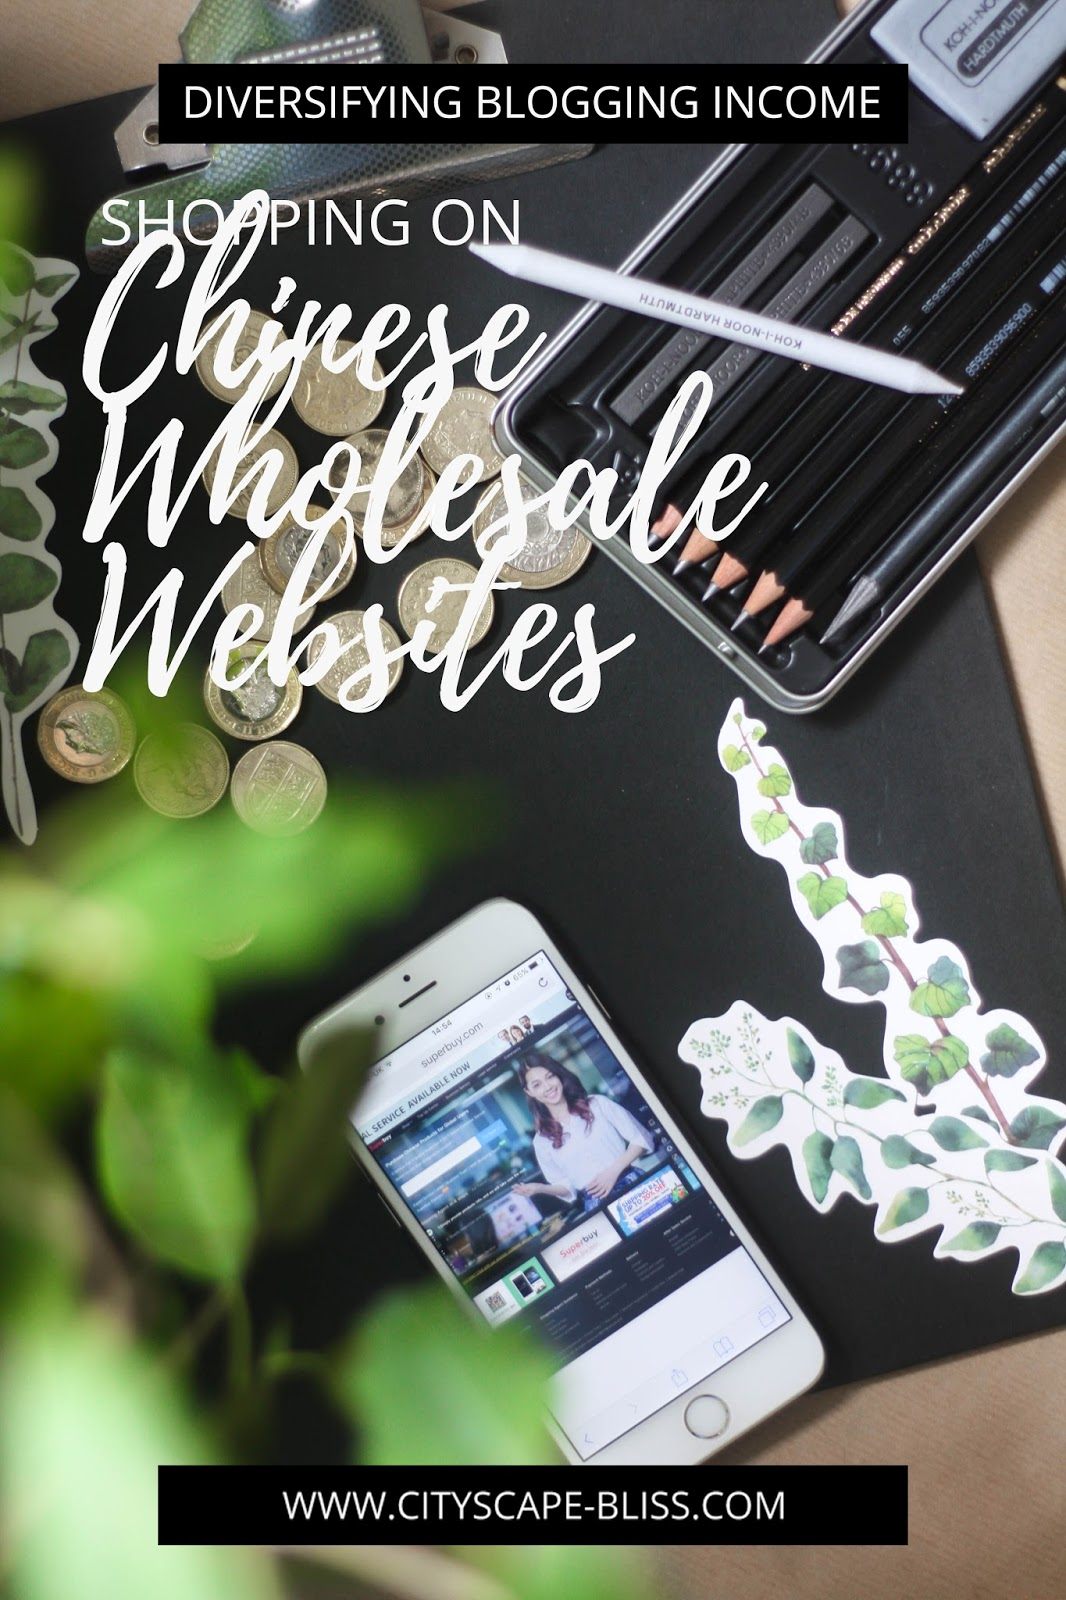 Diversifying blogging income: Shopping on Chinese wholesale websites